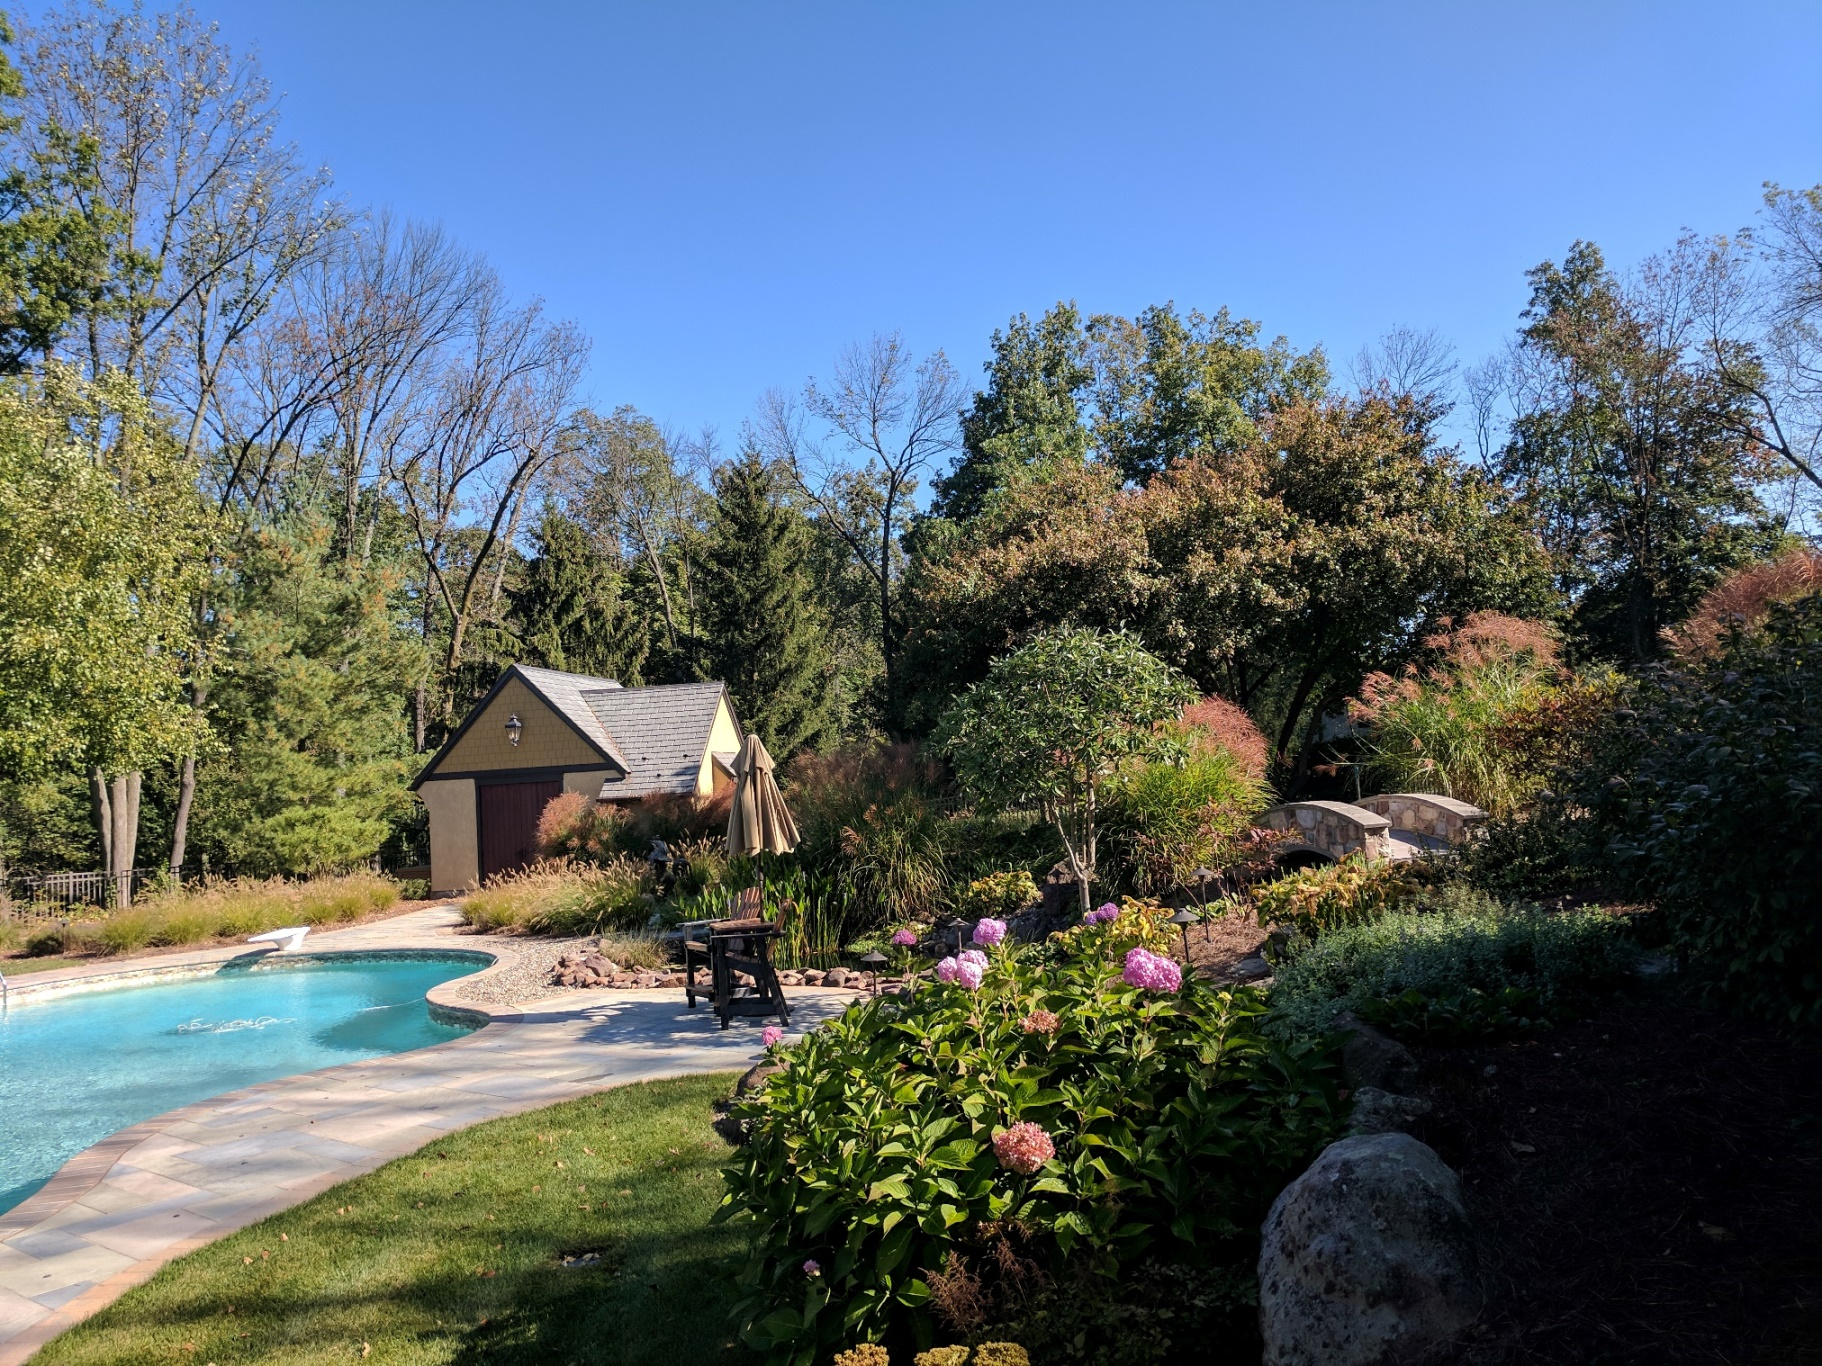 Meadow plantings naturalize pool in woodland clearing, Denver, PA